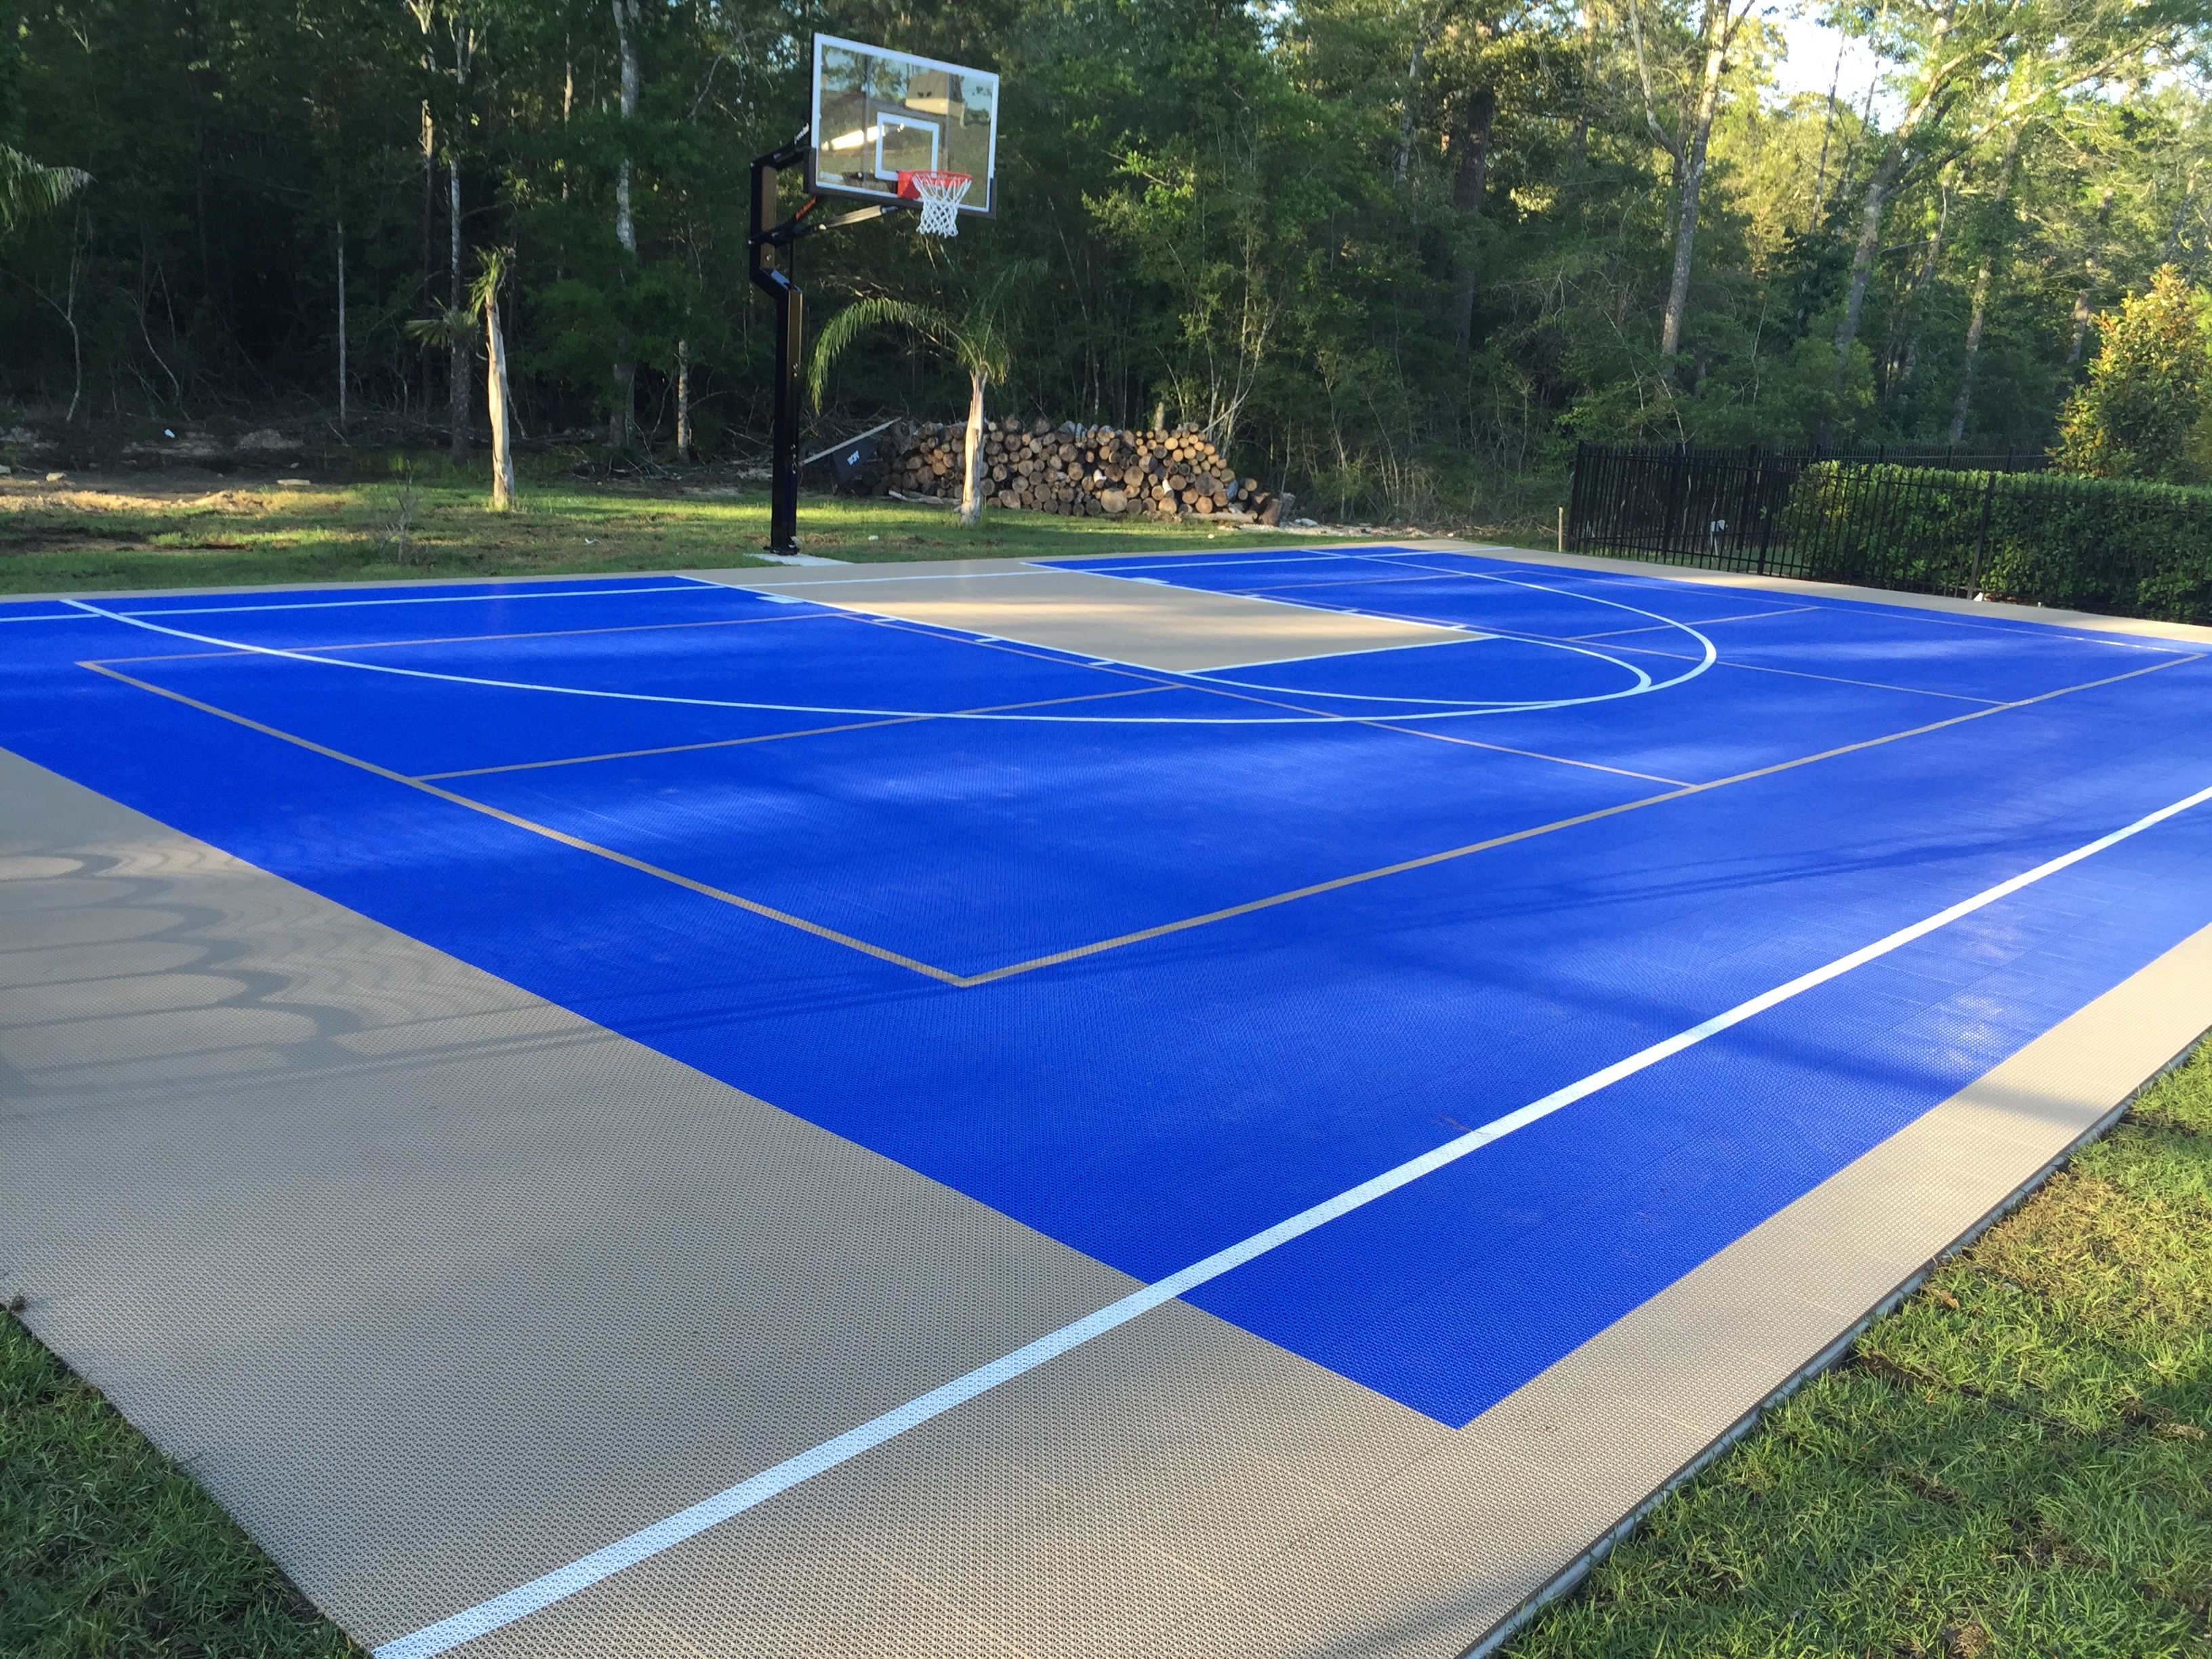 64' x 40' basketball, pickle ball, volleyball court in bright blue and beige